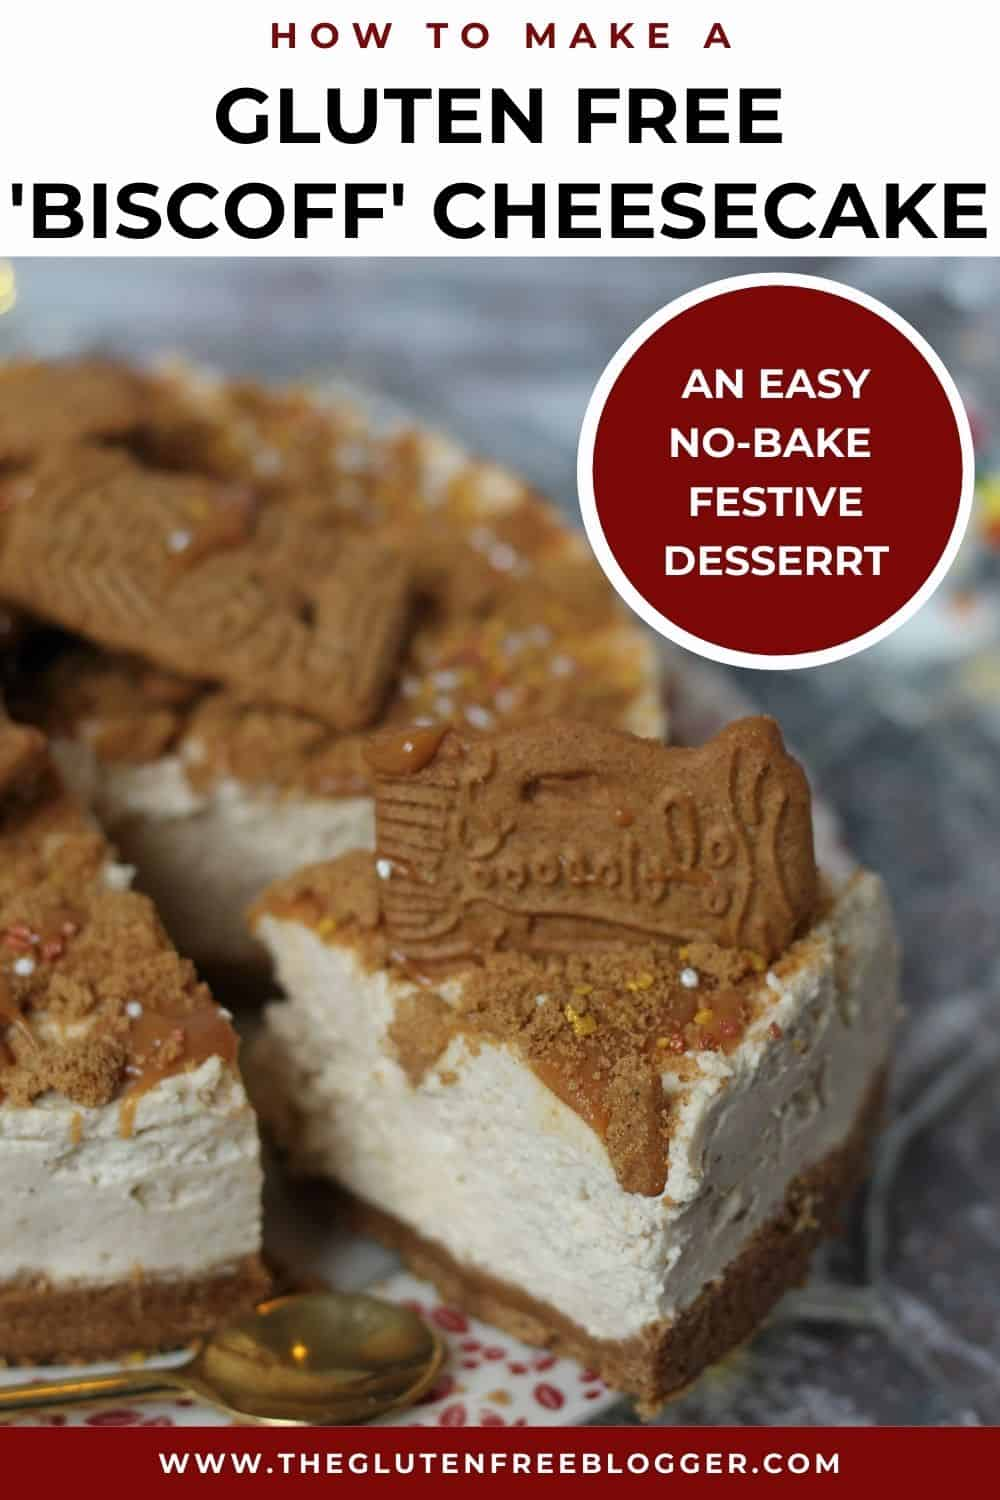 gluten free biscoff cheesecake recipe